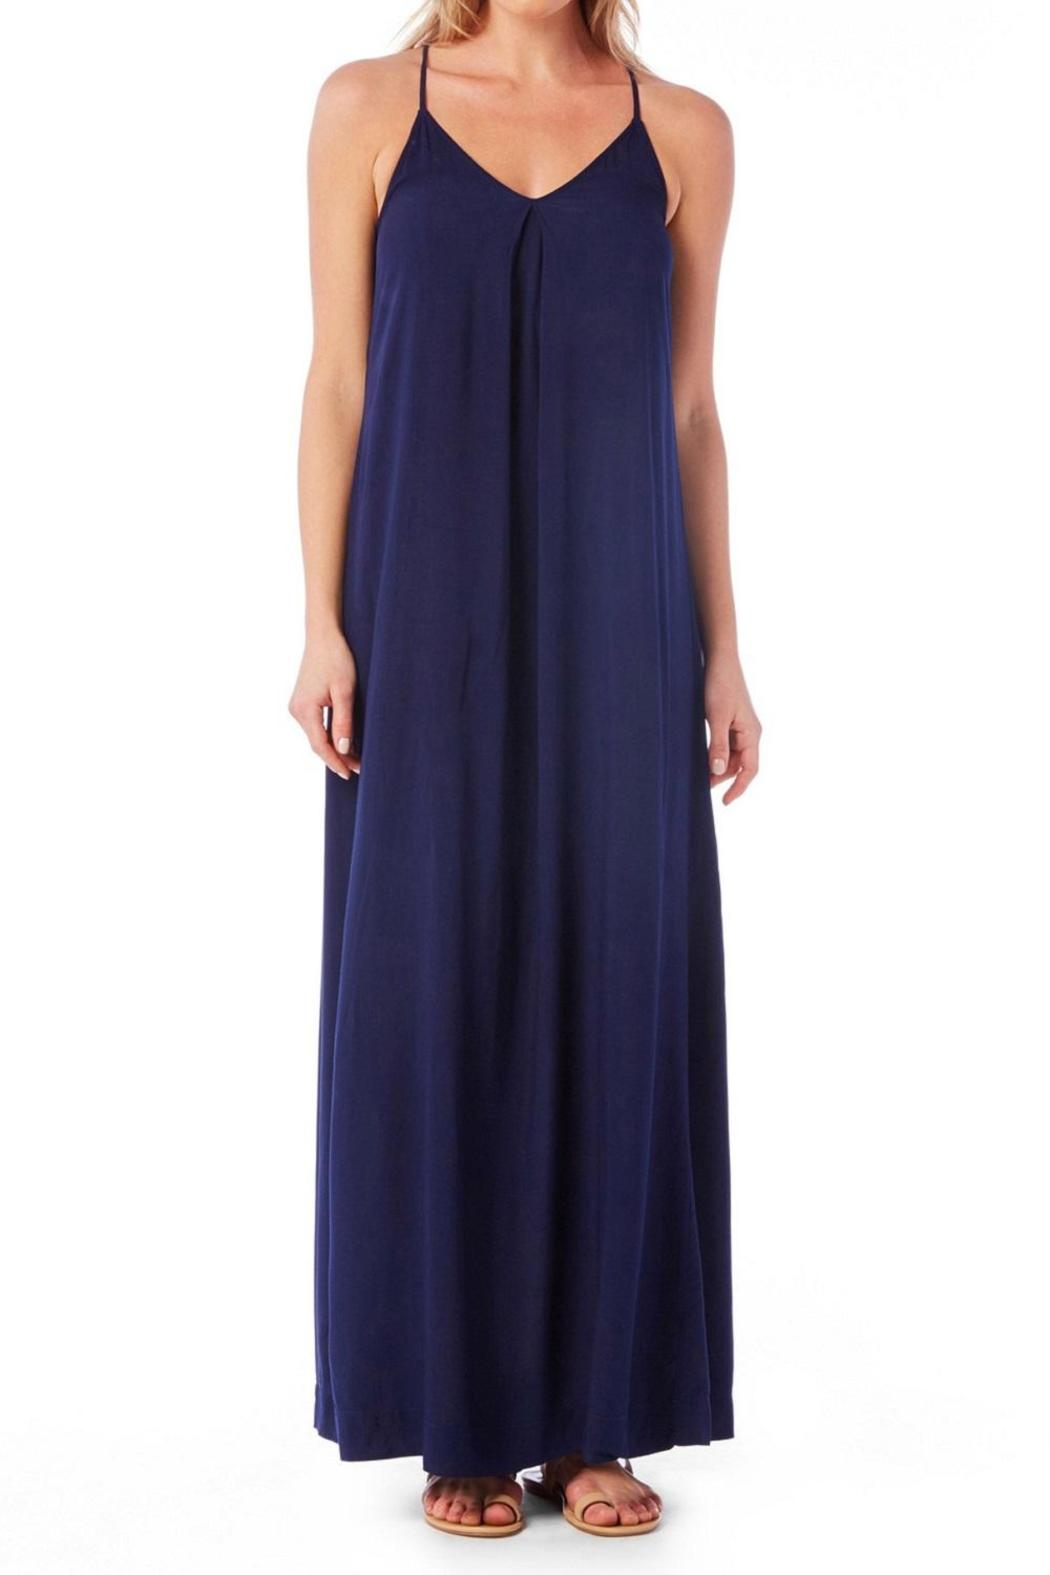 d7403b115385 Michael Stars Modern Maxi Slip-Dress from New Jersey by Rouge ...